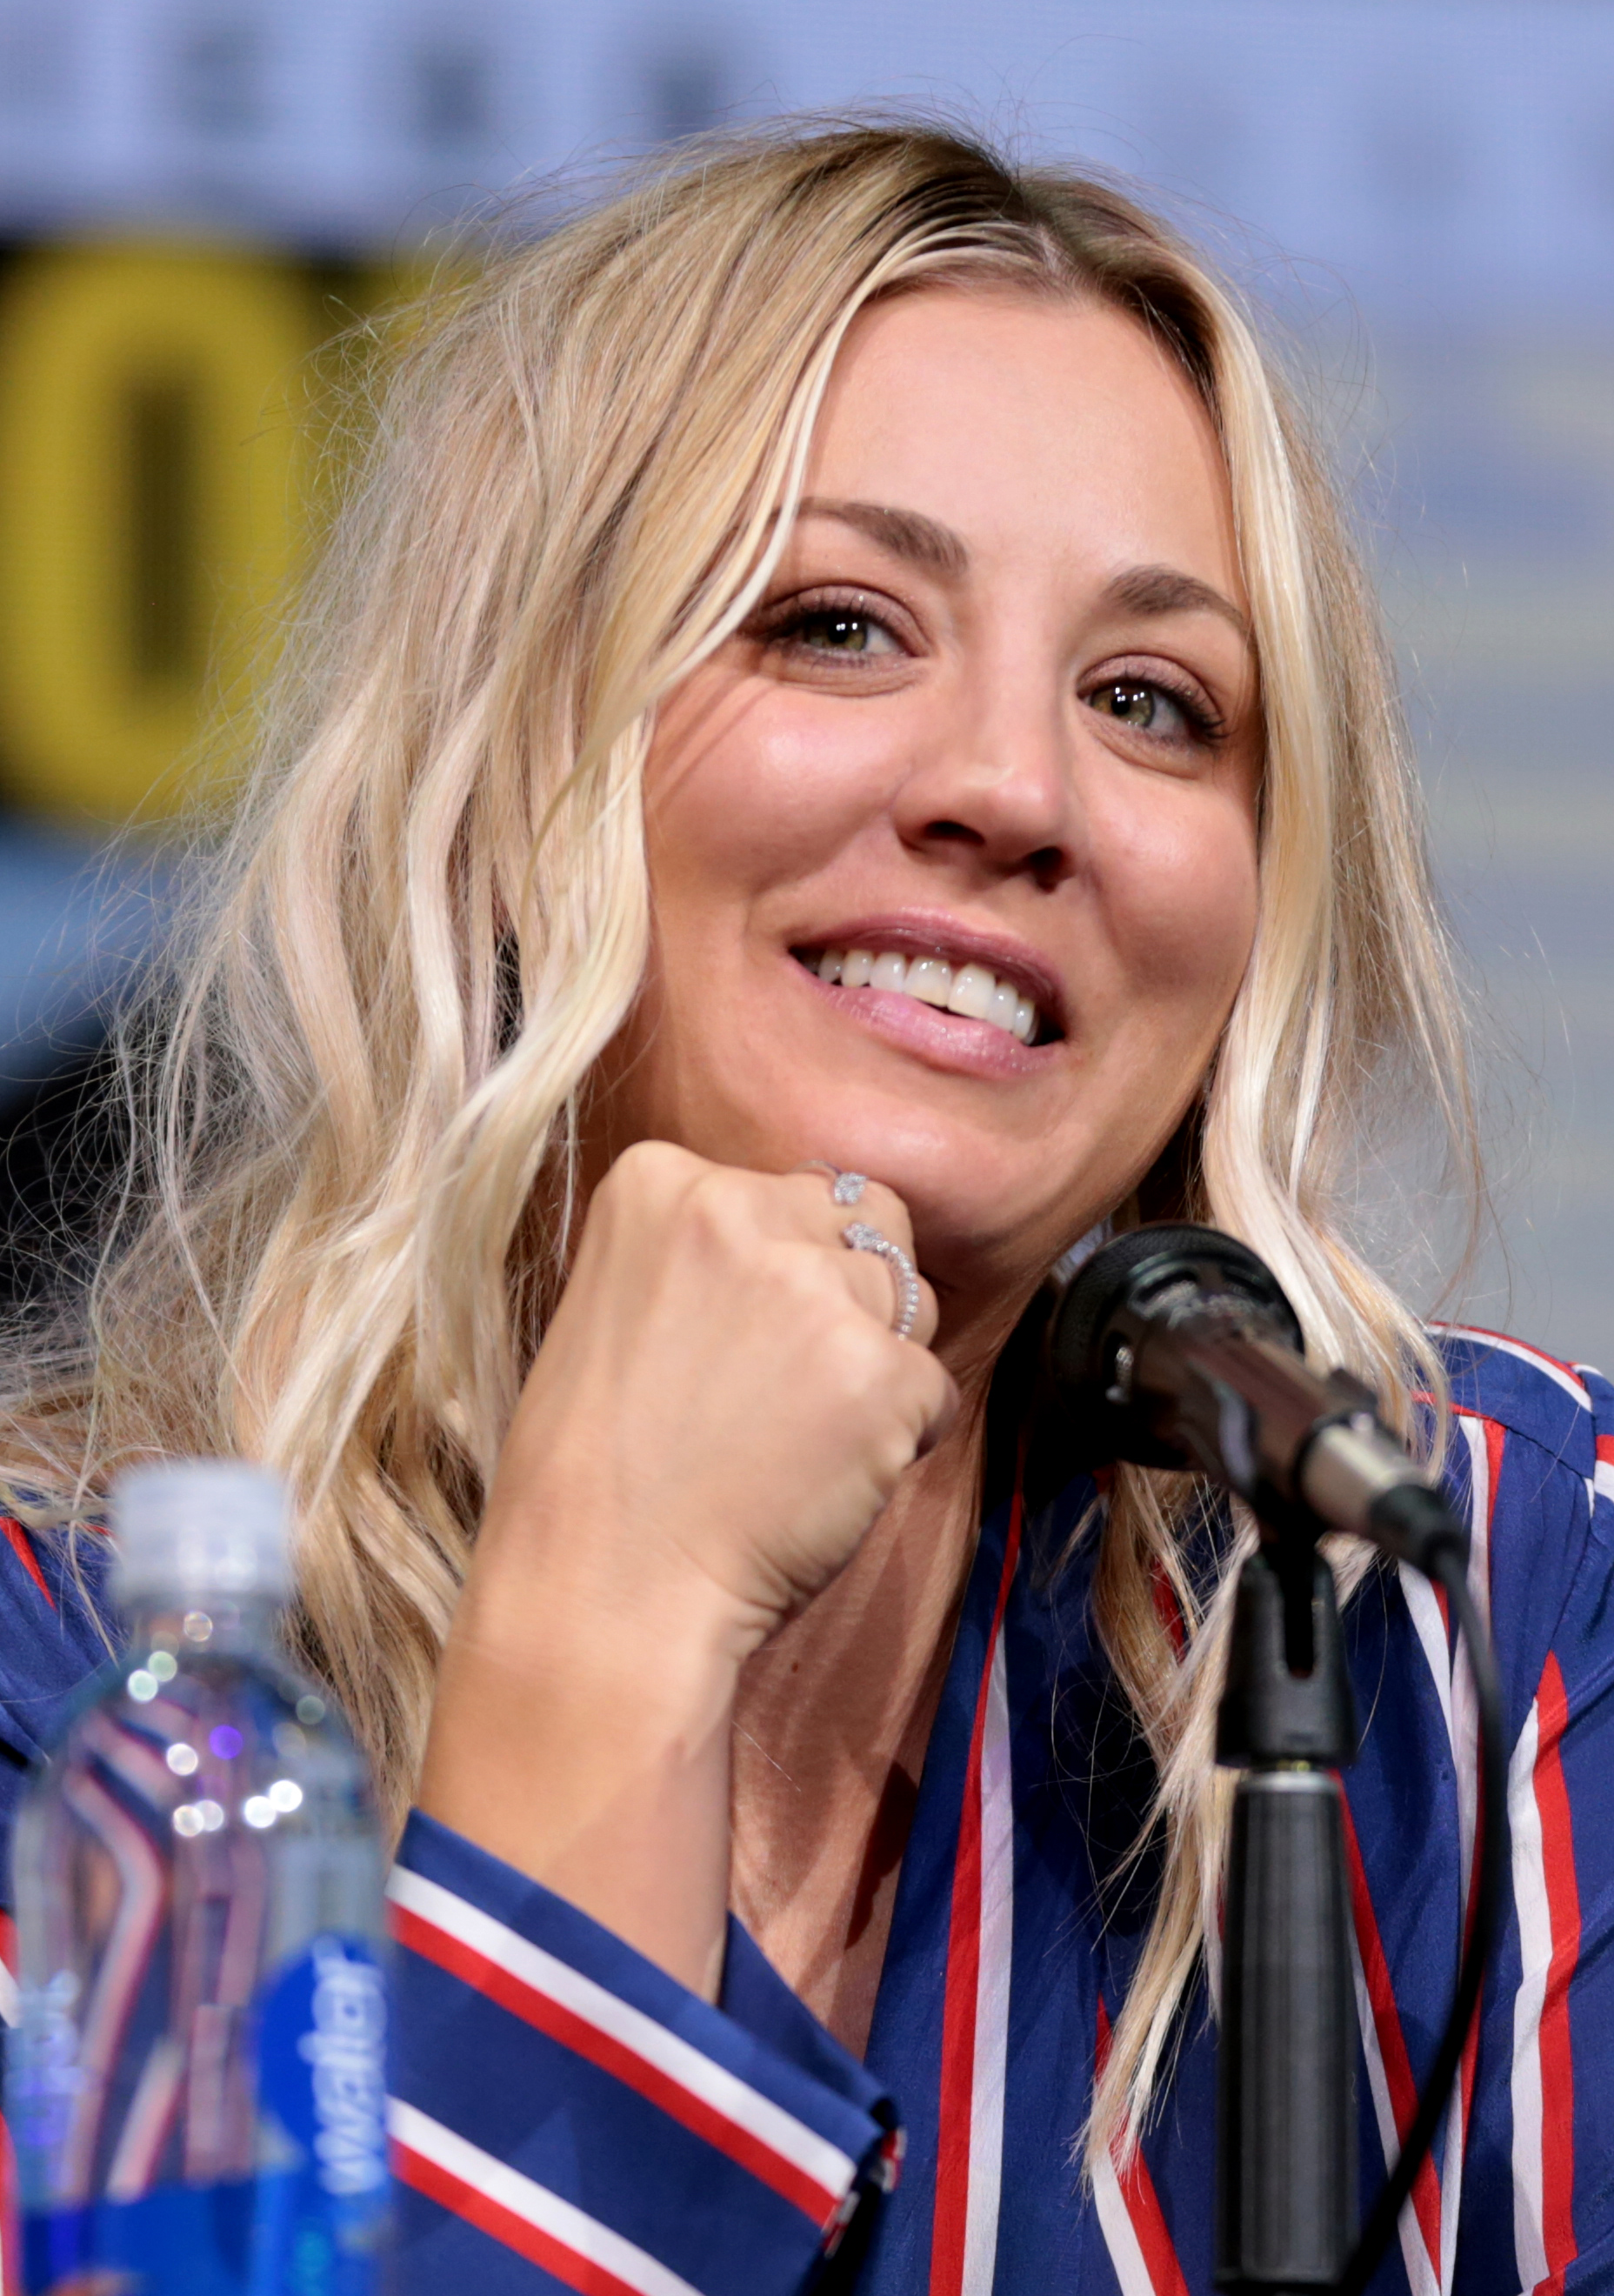 Cuoco in July 2017